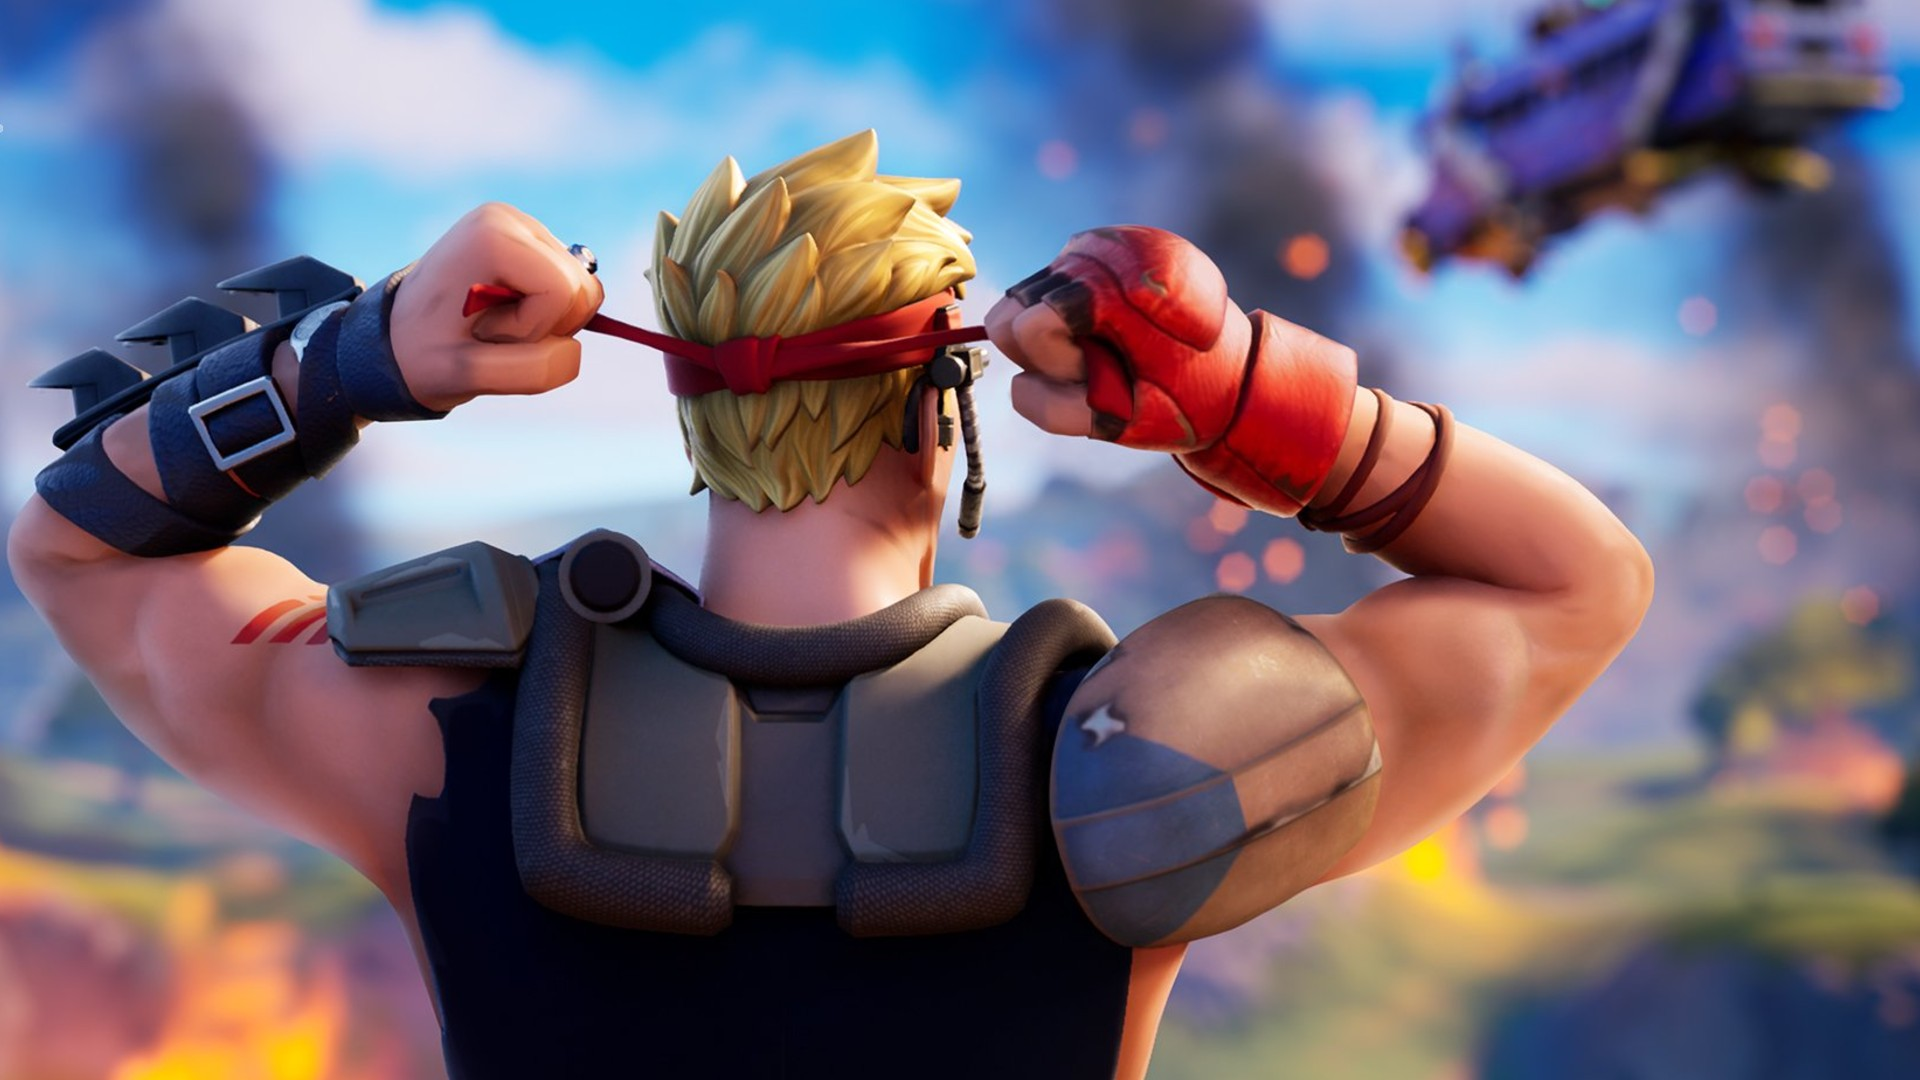 The Avengers directors were behind Fortnite's Season 6 cinematic